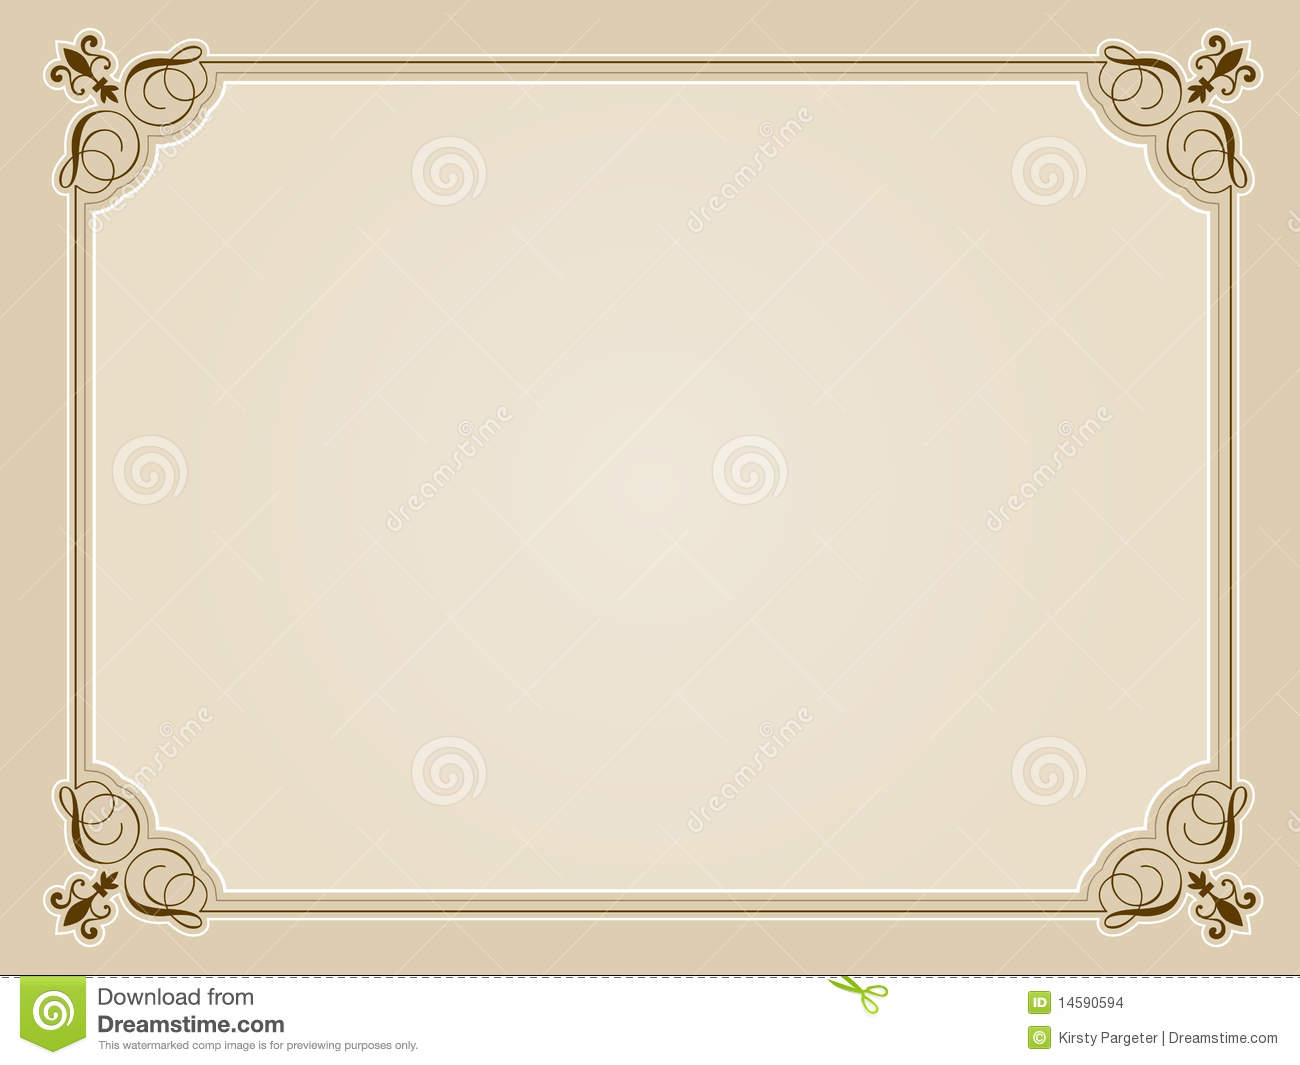 certificate background design free download  Blank Certificate Background Stock Vector - Illustration of ...